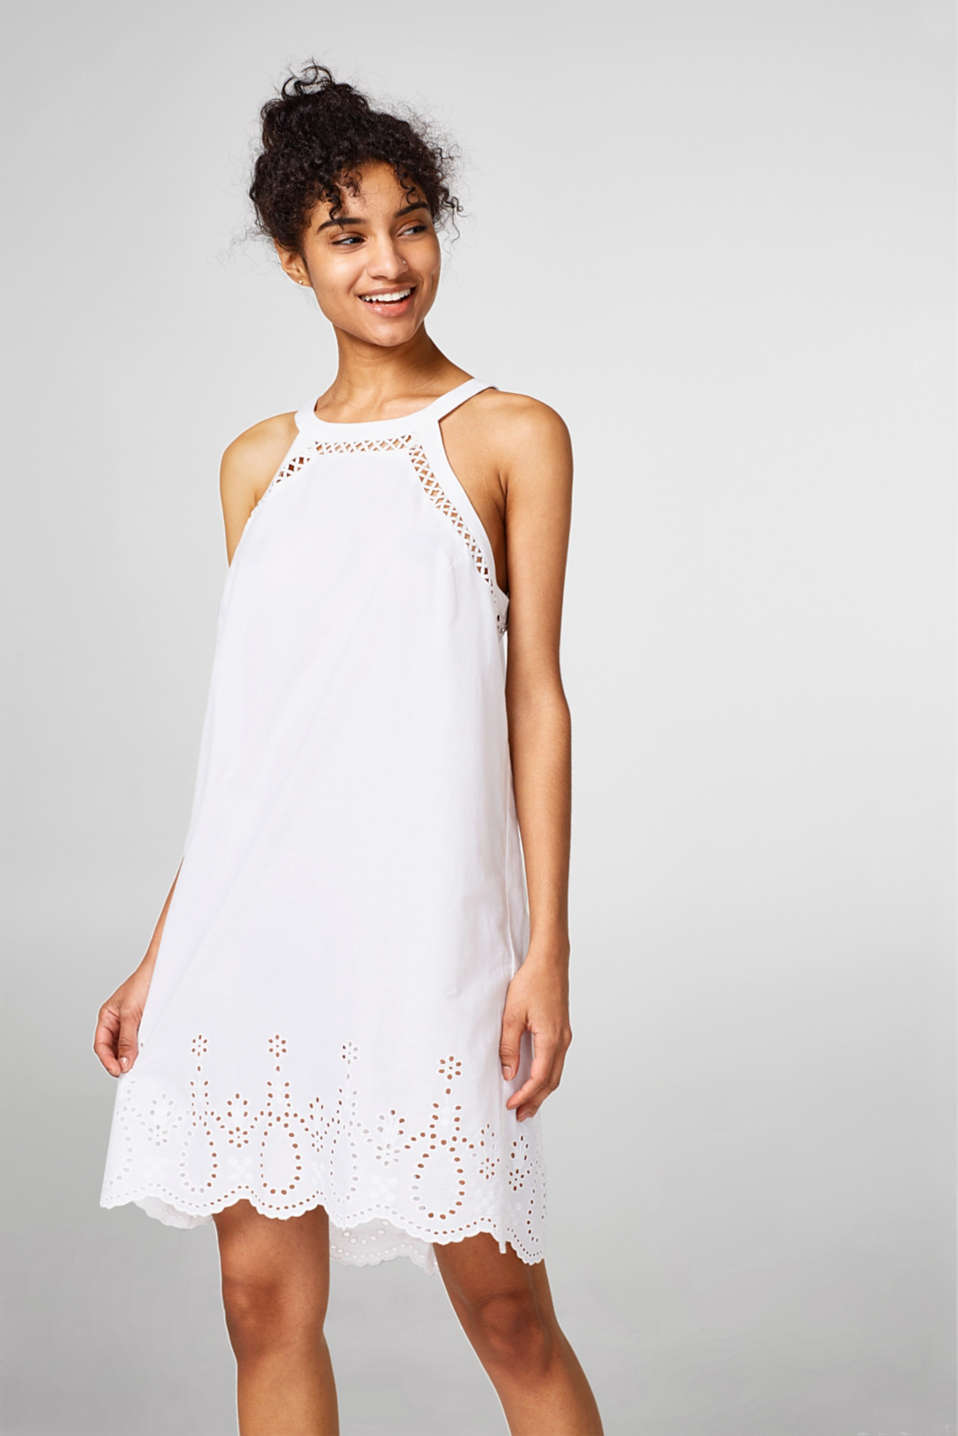 Esprit - Light and airy dress with broderie anglaise